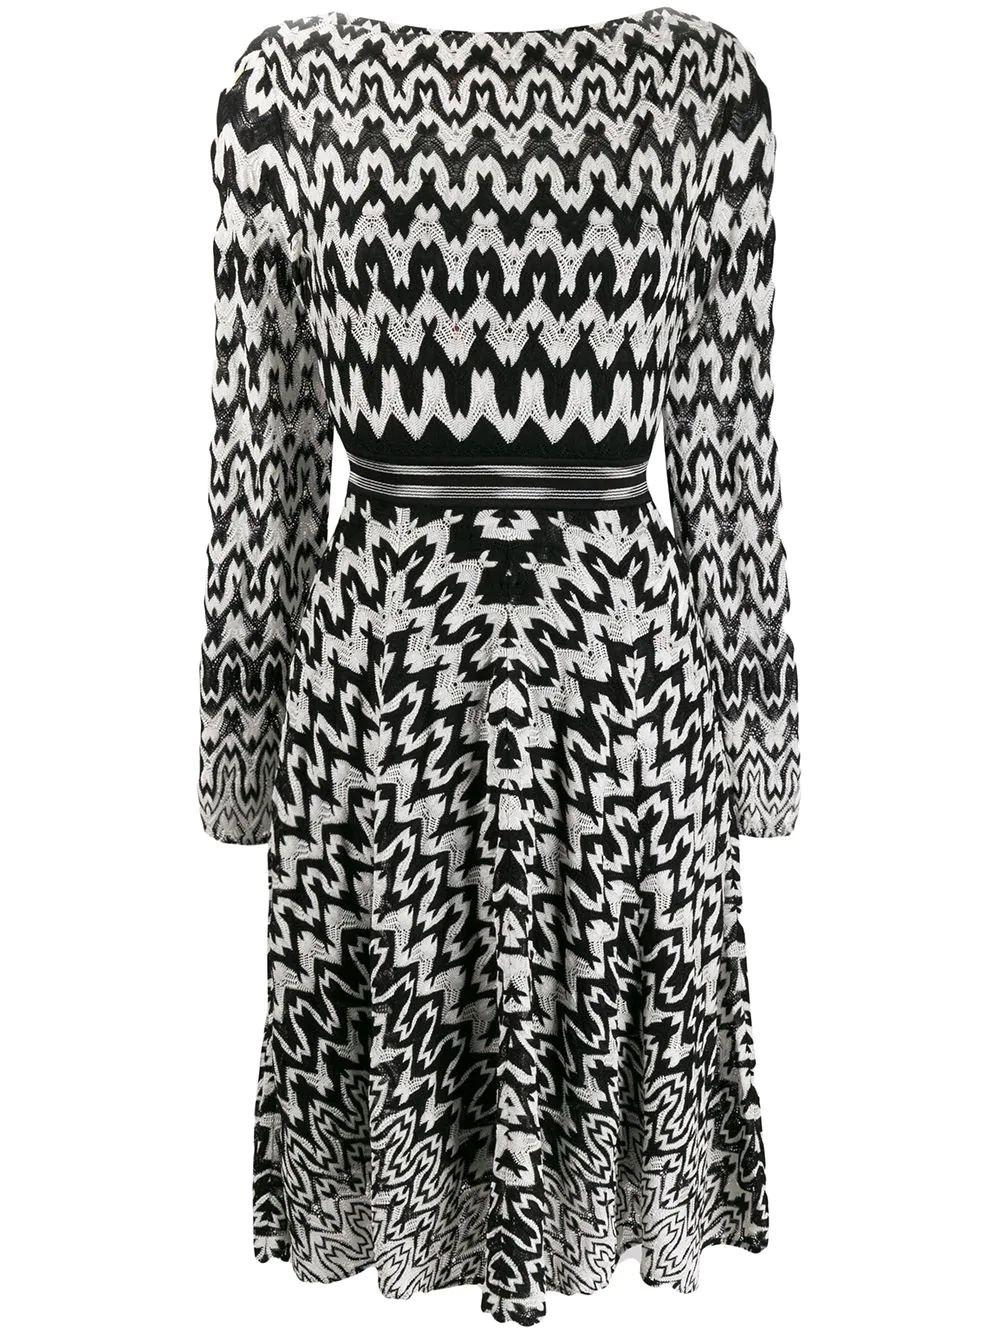 Long Sleeve Print Dress With Waistband Detail Item # MDG00488-BR007H